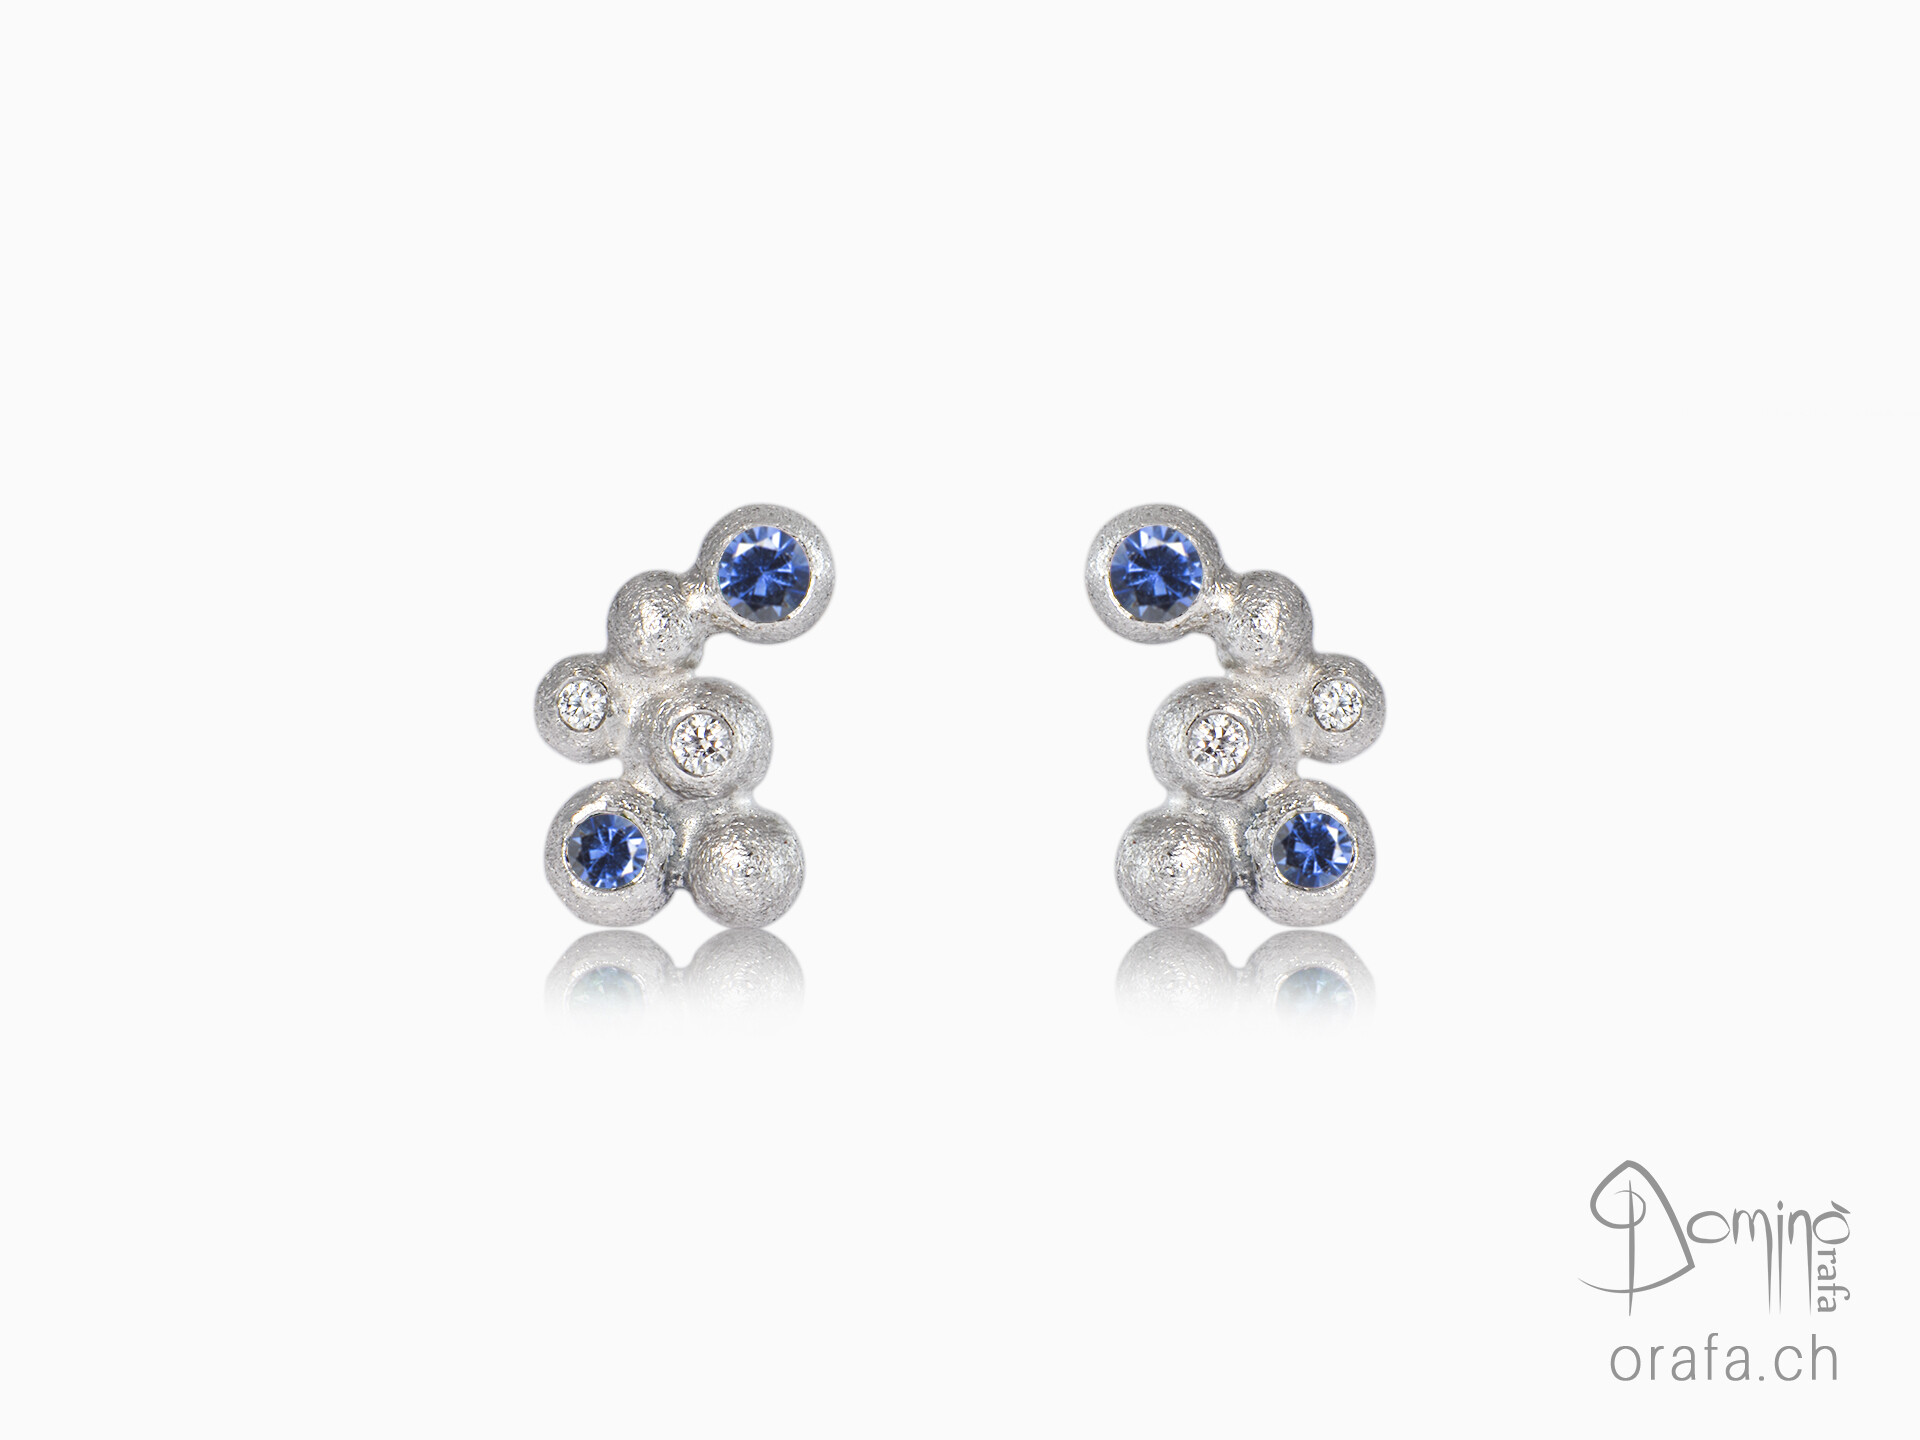 Sphere earrings with diamonds and blue sapphires